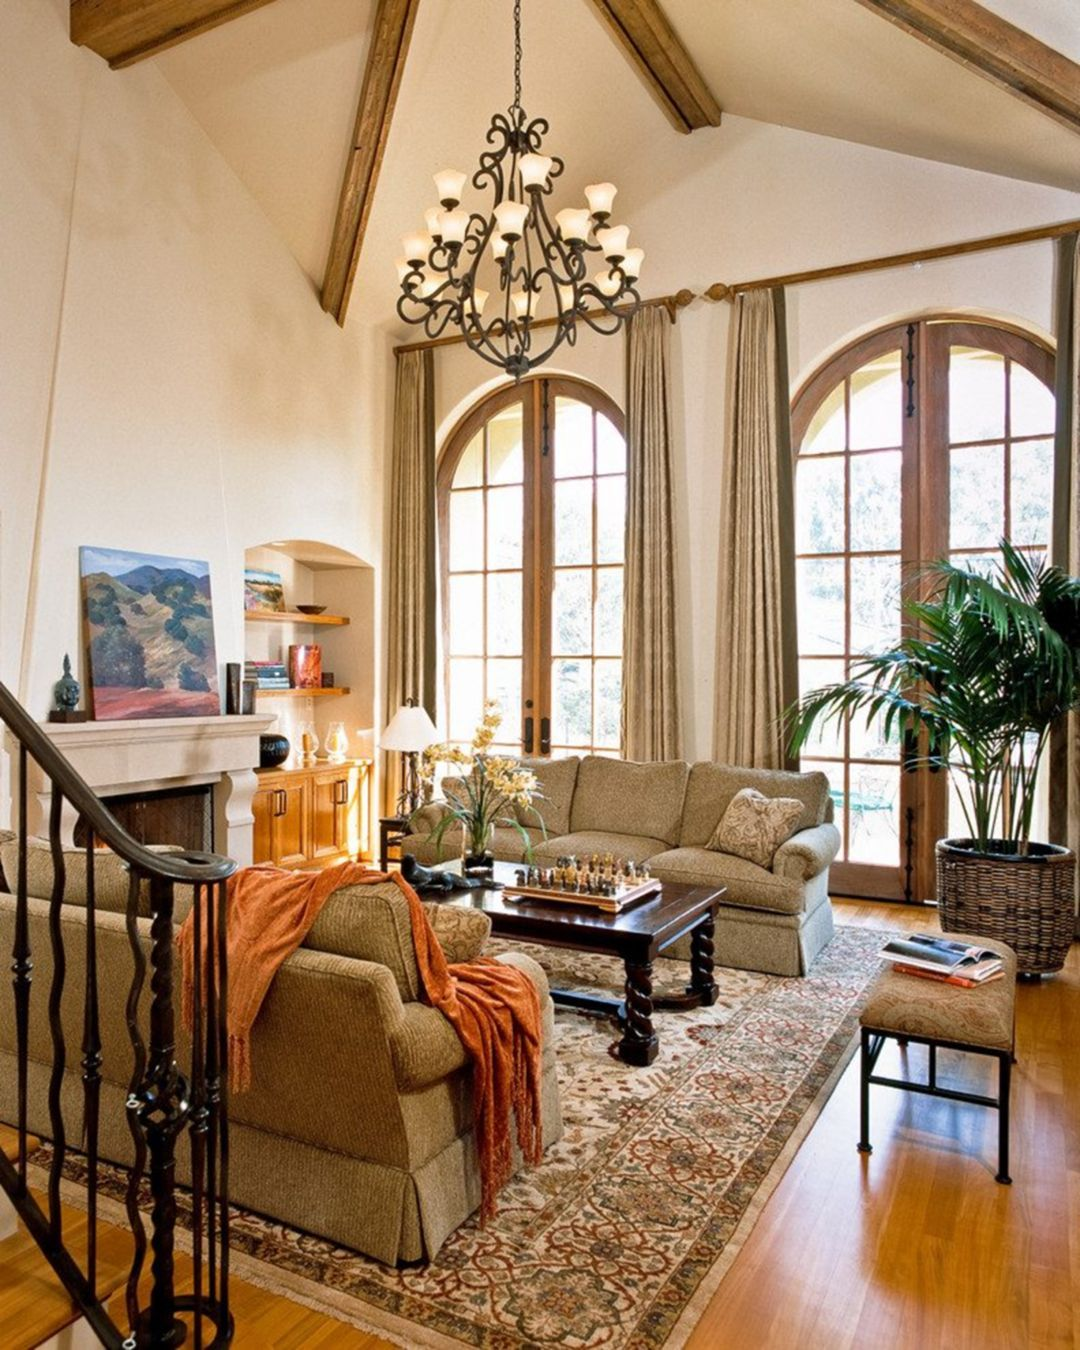 16 Simple Interior Design Ideas For Living Room: 12 Charming Traditional Interior Designs For Your Simple Home